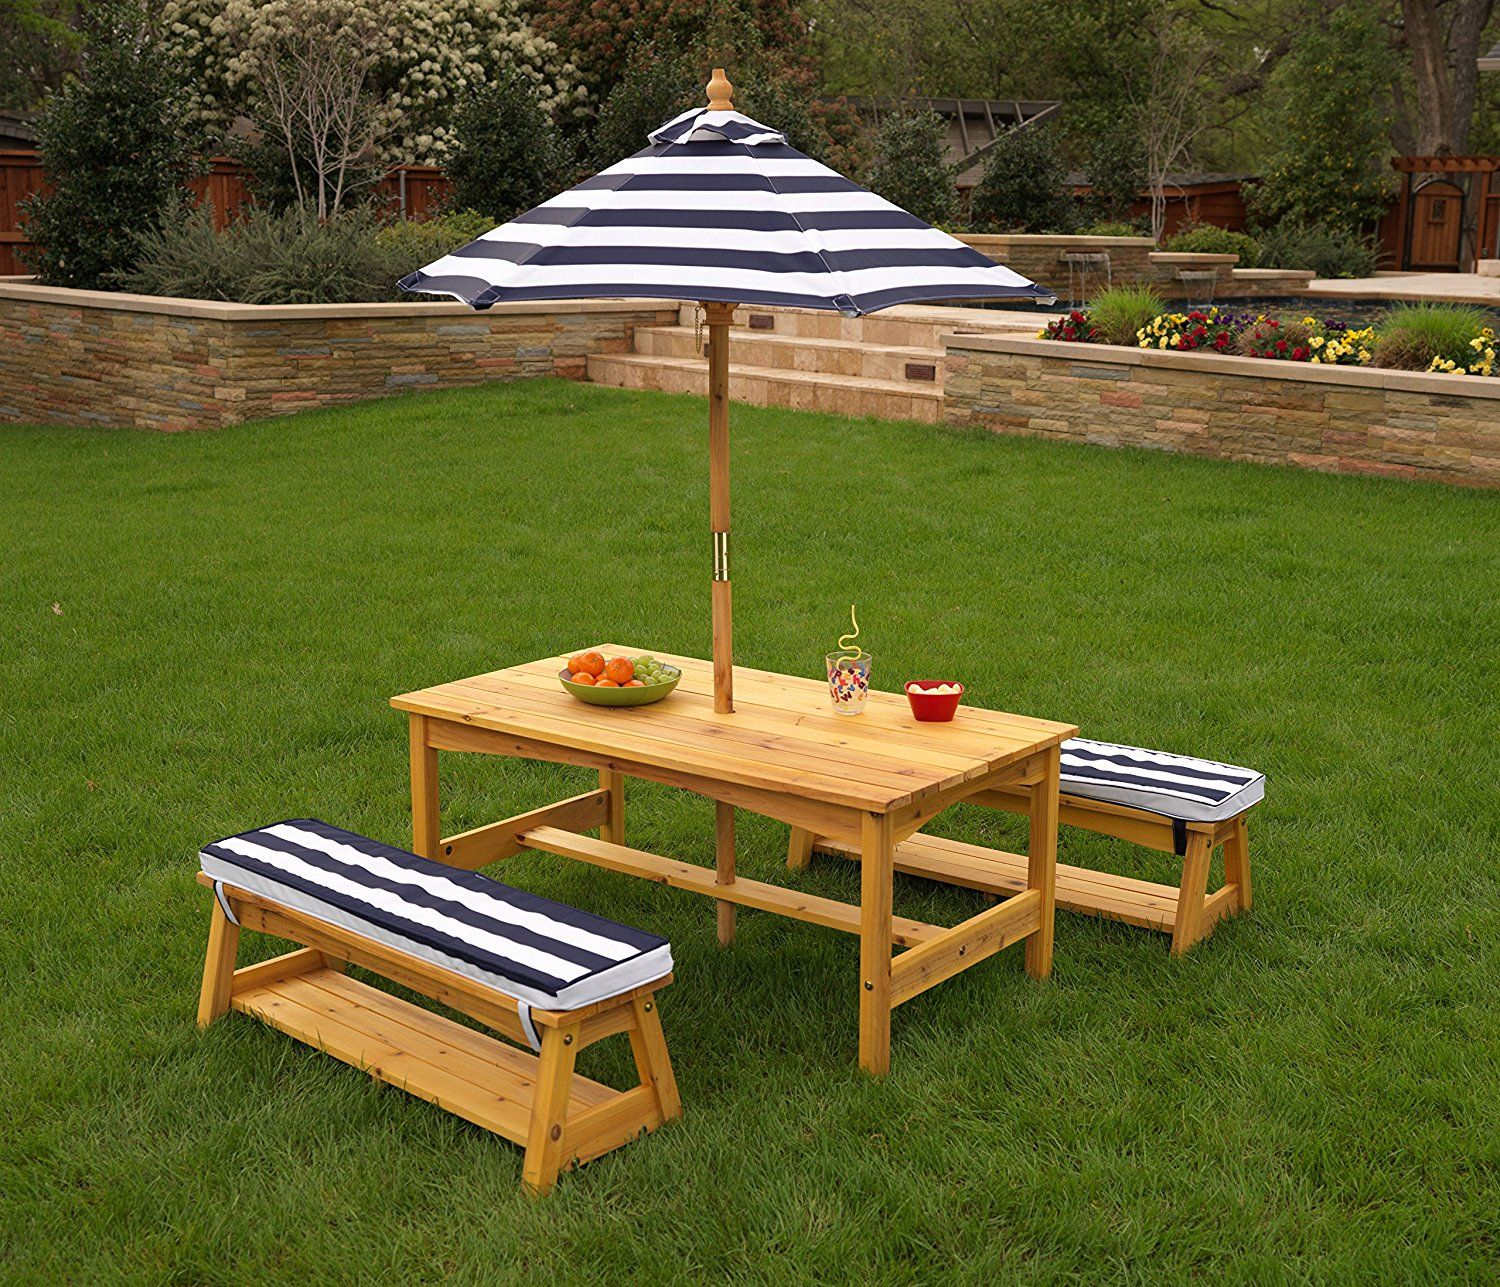 KidKraft Outdoor table and Chair Set with